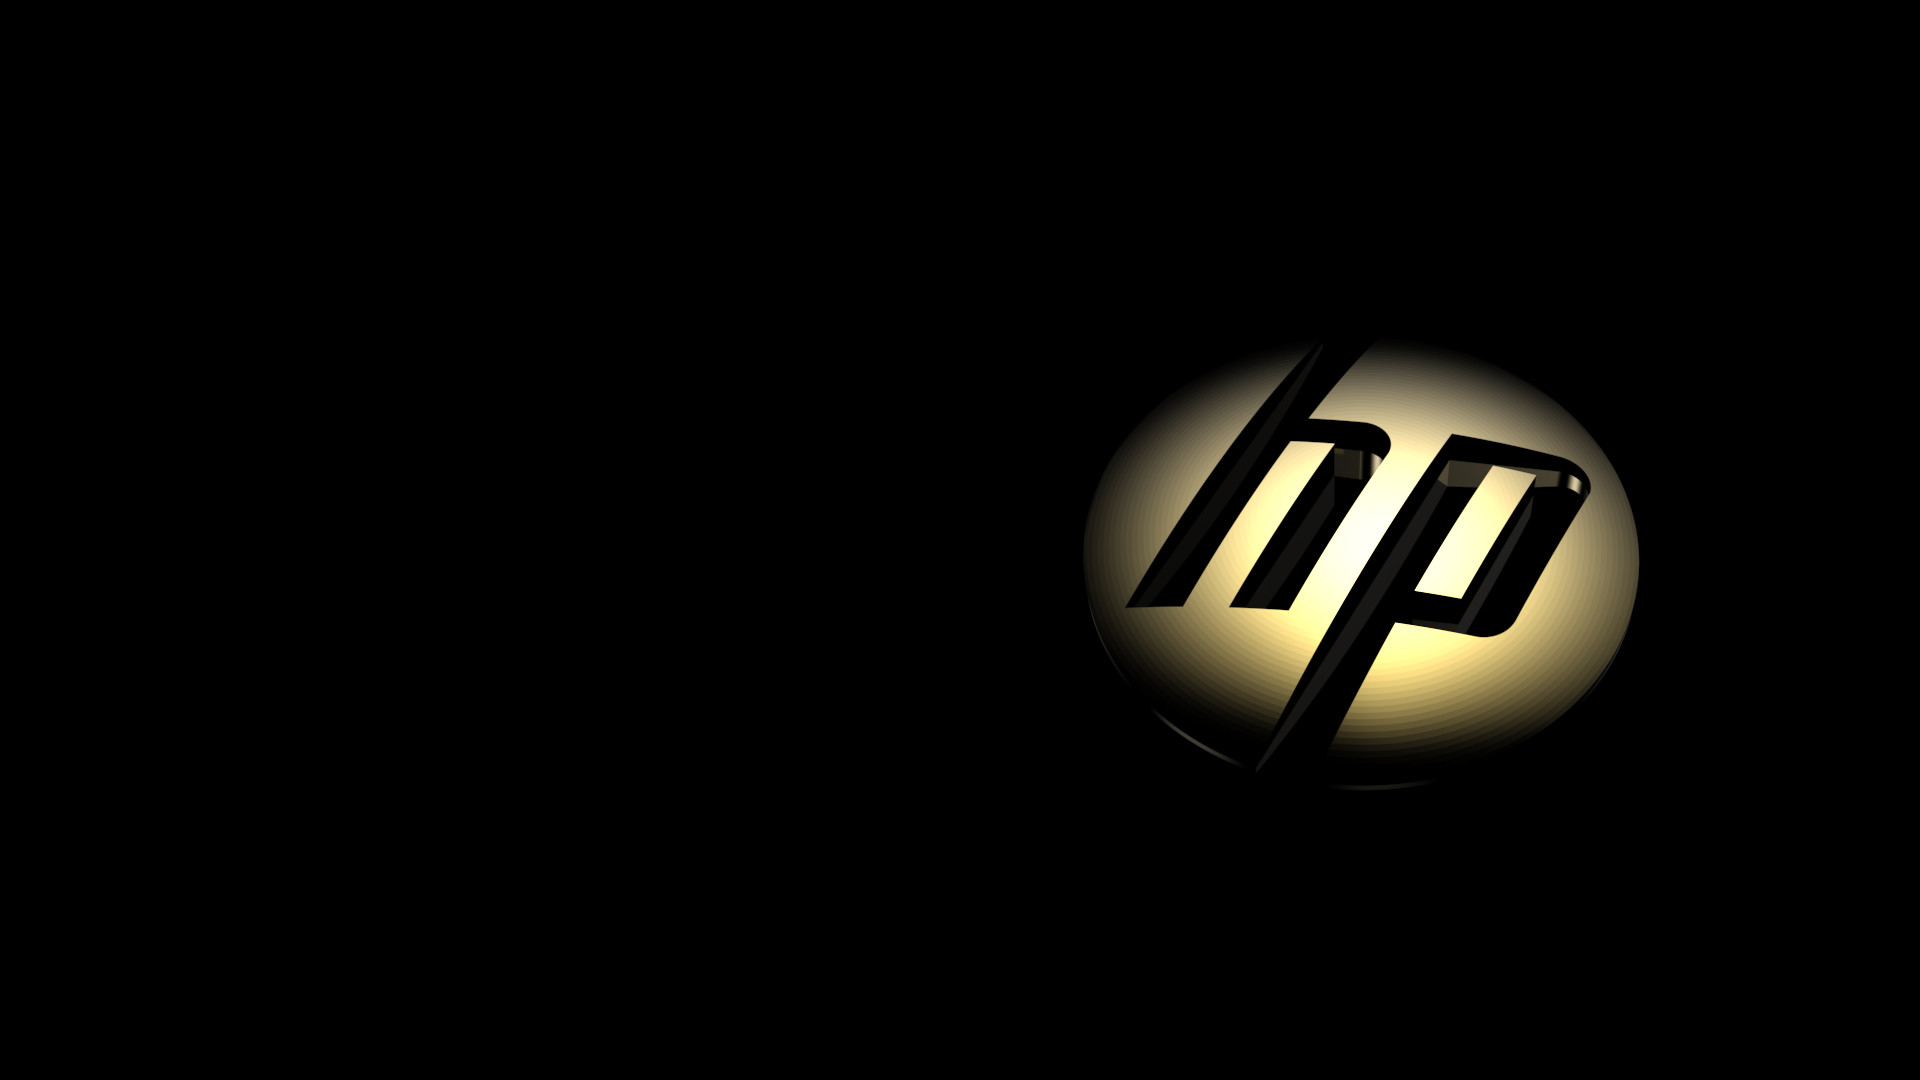 Hp Wallpapers Hd 1080p 69 Images HD Wallpapers Download Free Images Wallpaper [1000image.com]